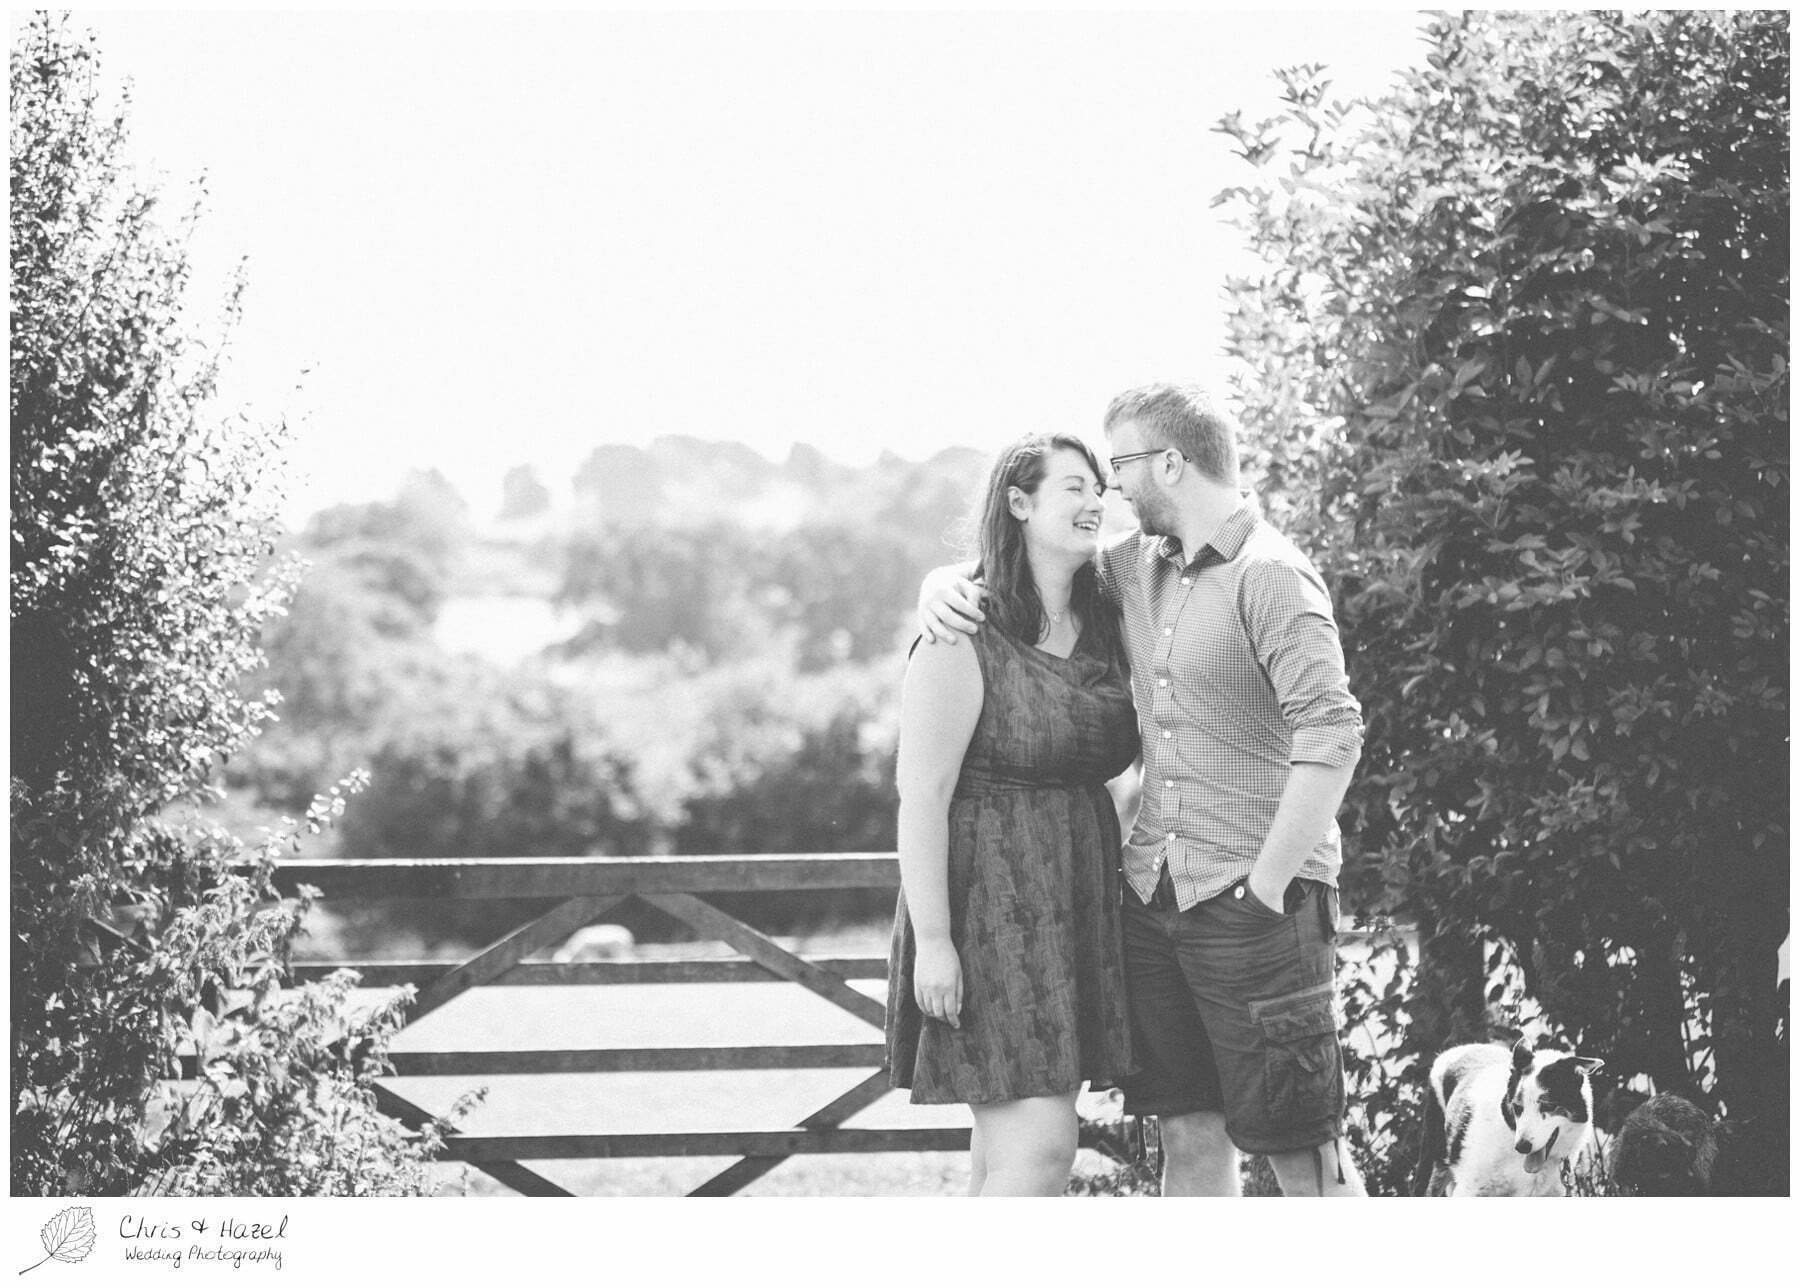 engagement, dogs, Fountains abbey national trust, Rippon, Fountains Abbey, Pre Wedding Photography Yorkshire, Chris and Hazel Wedding Photography, Sam Nicholson, Emily Nunwick,